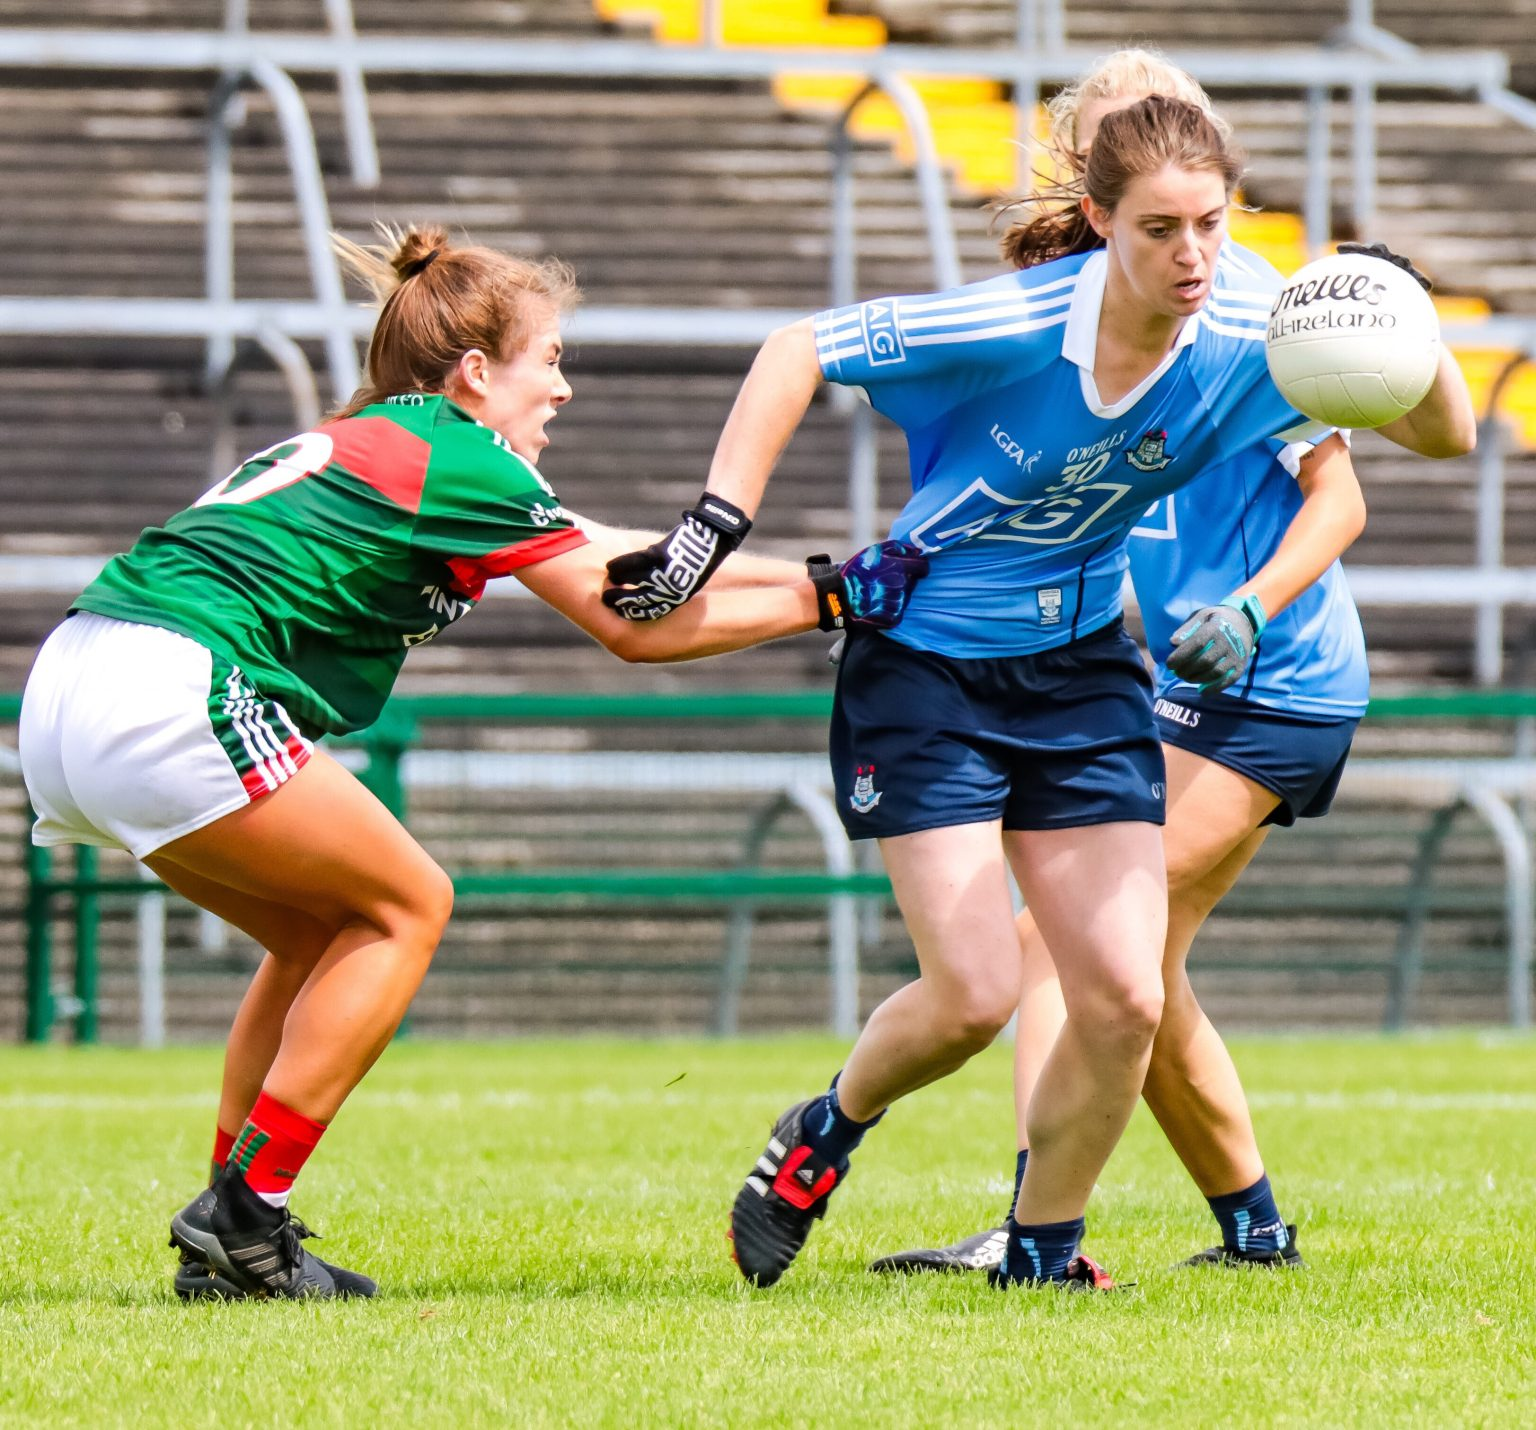 Dublin Ladies Footballer in a sky blue jersey and navy shorts breaks away from a Mayo player in a green and red jersey